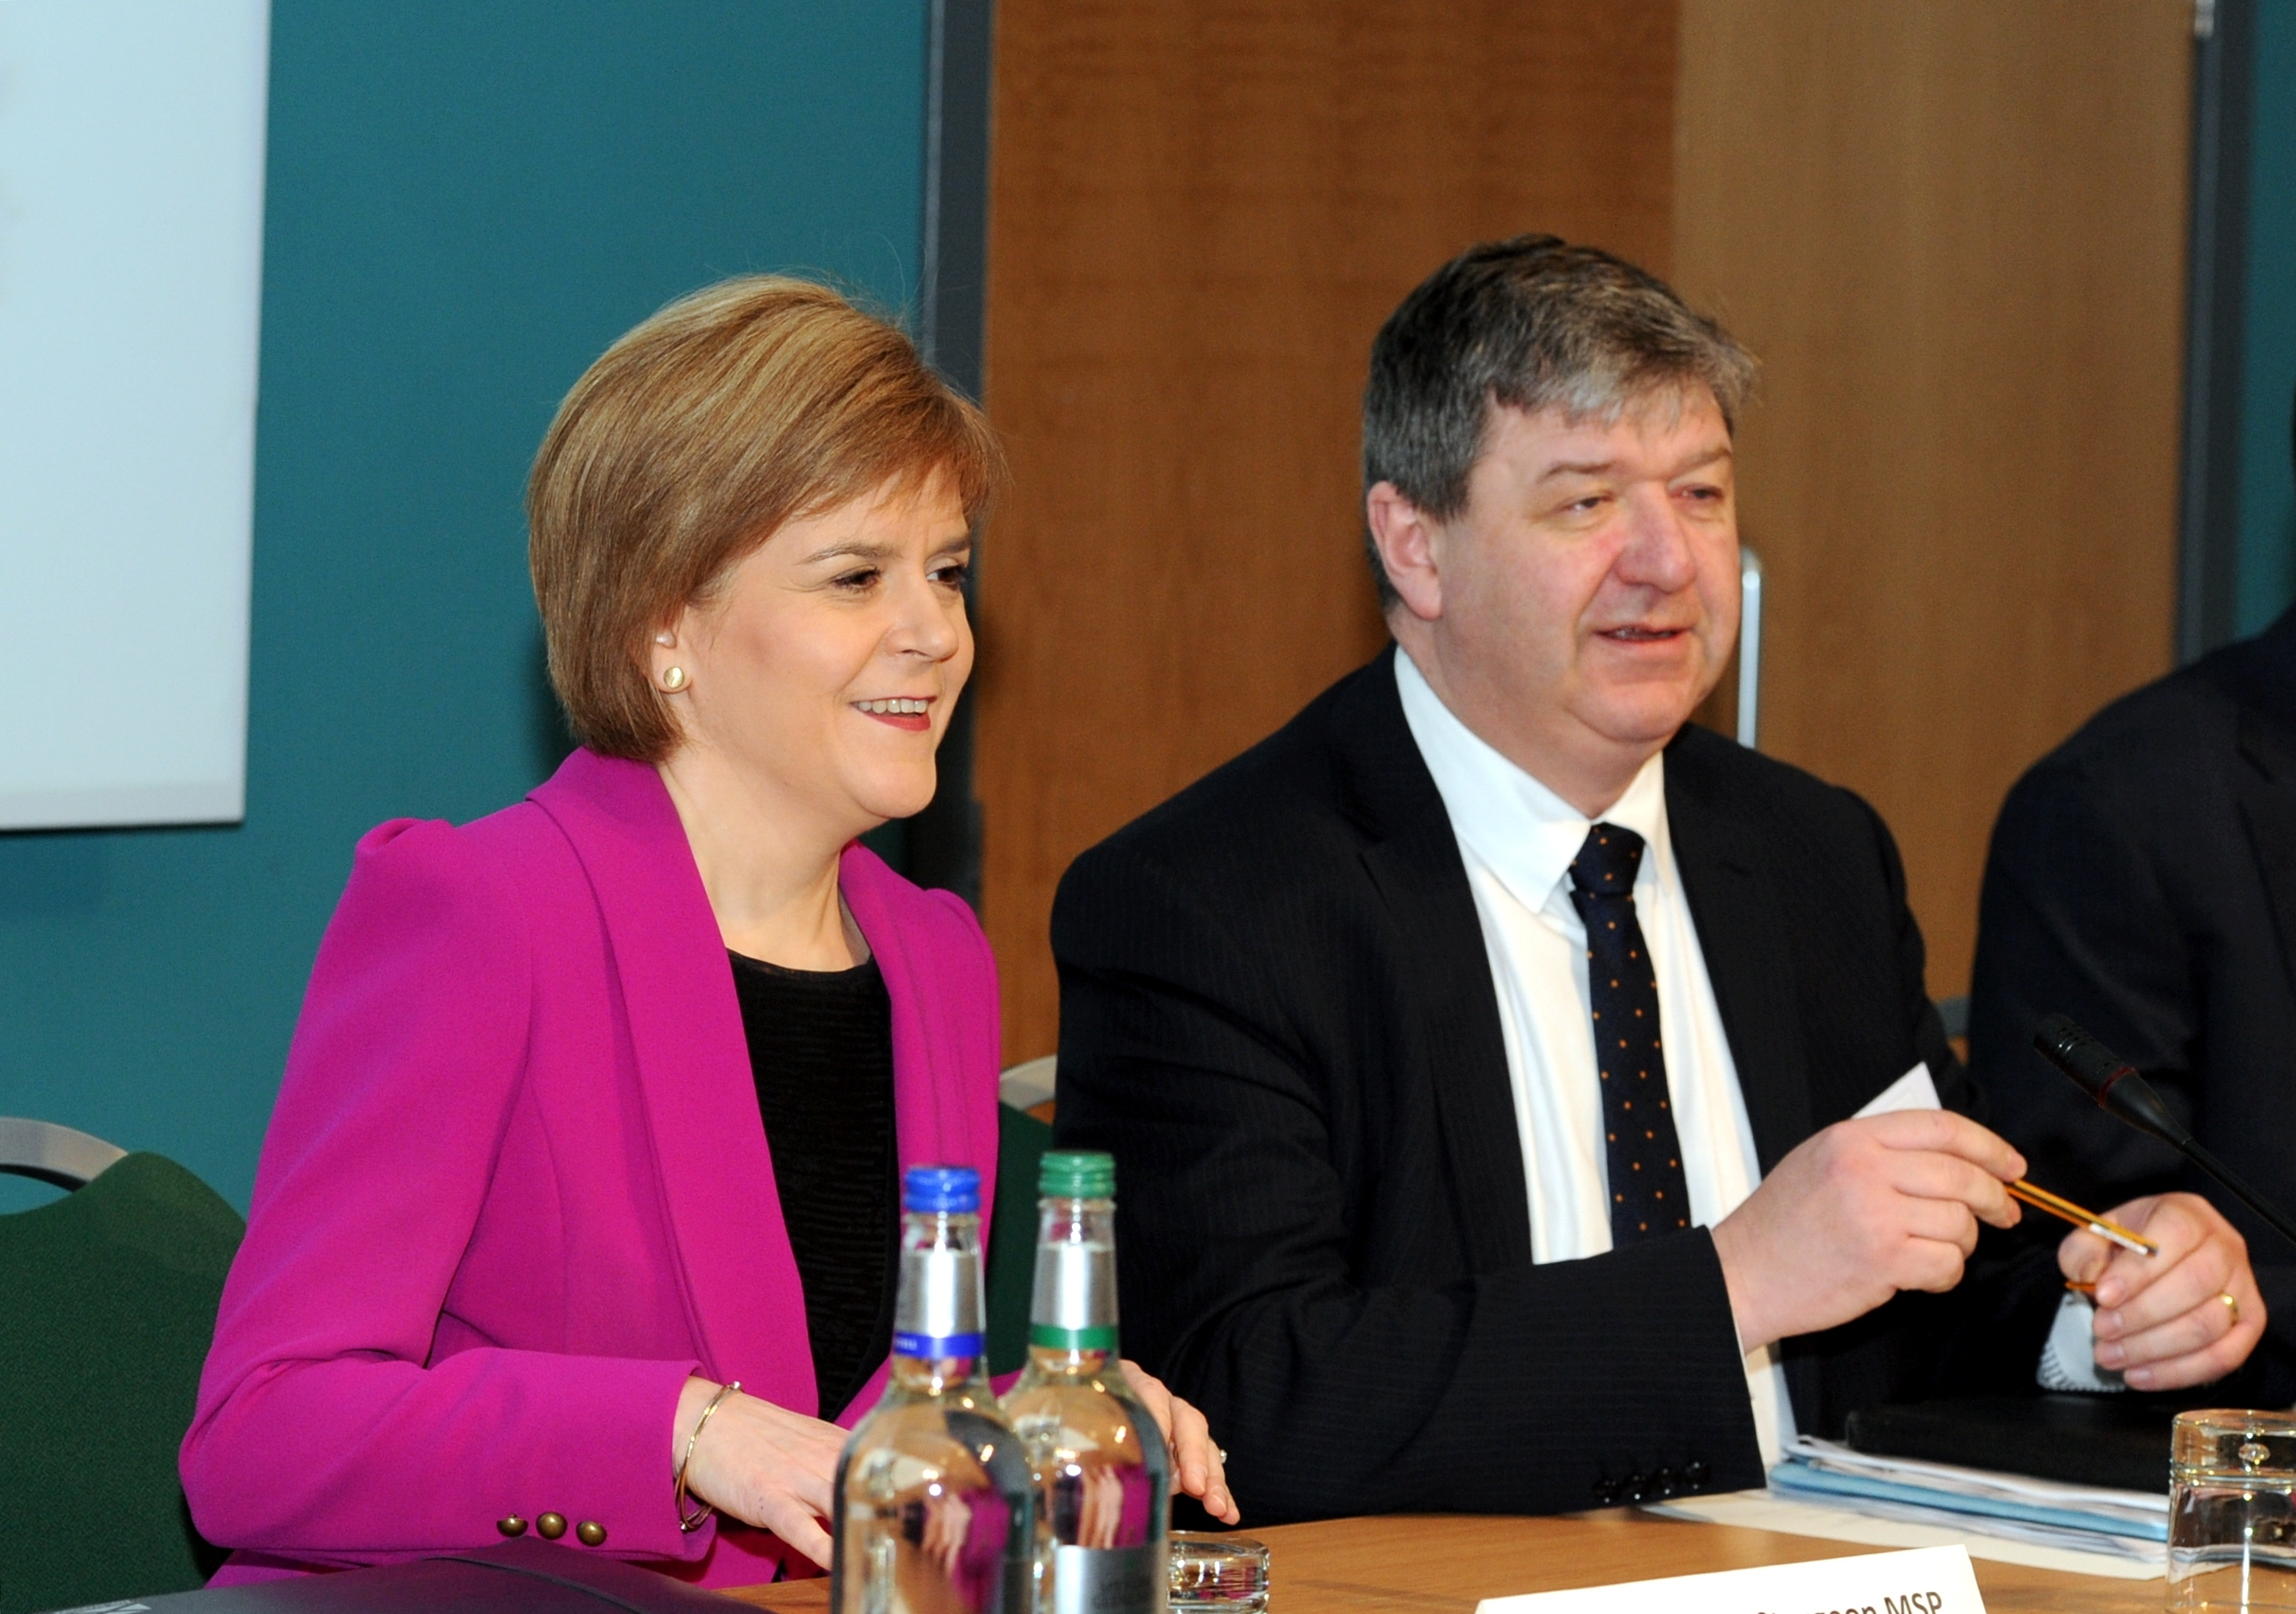 Nicola Sturgeon and Alistair Carmichael